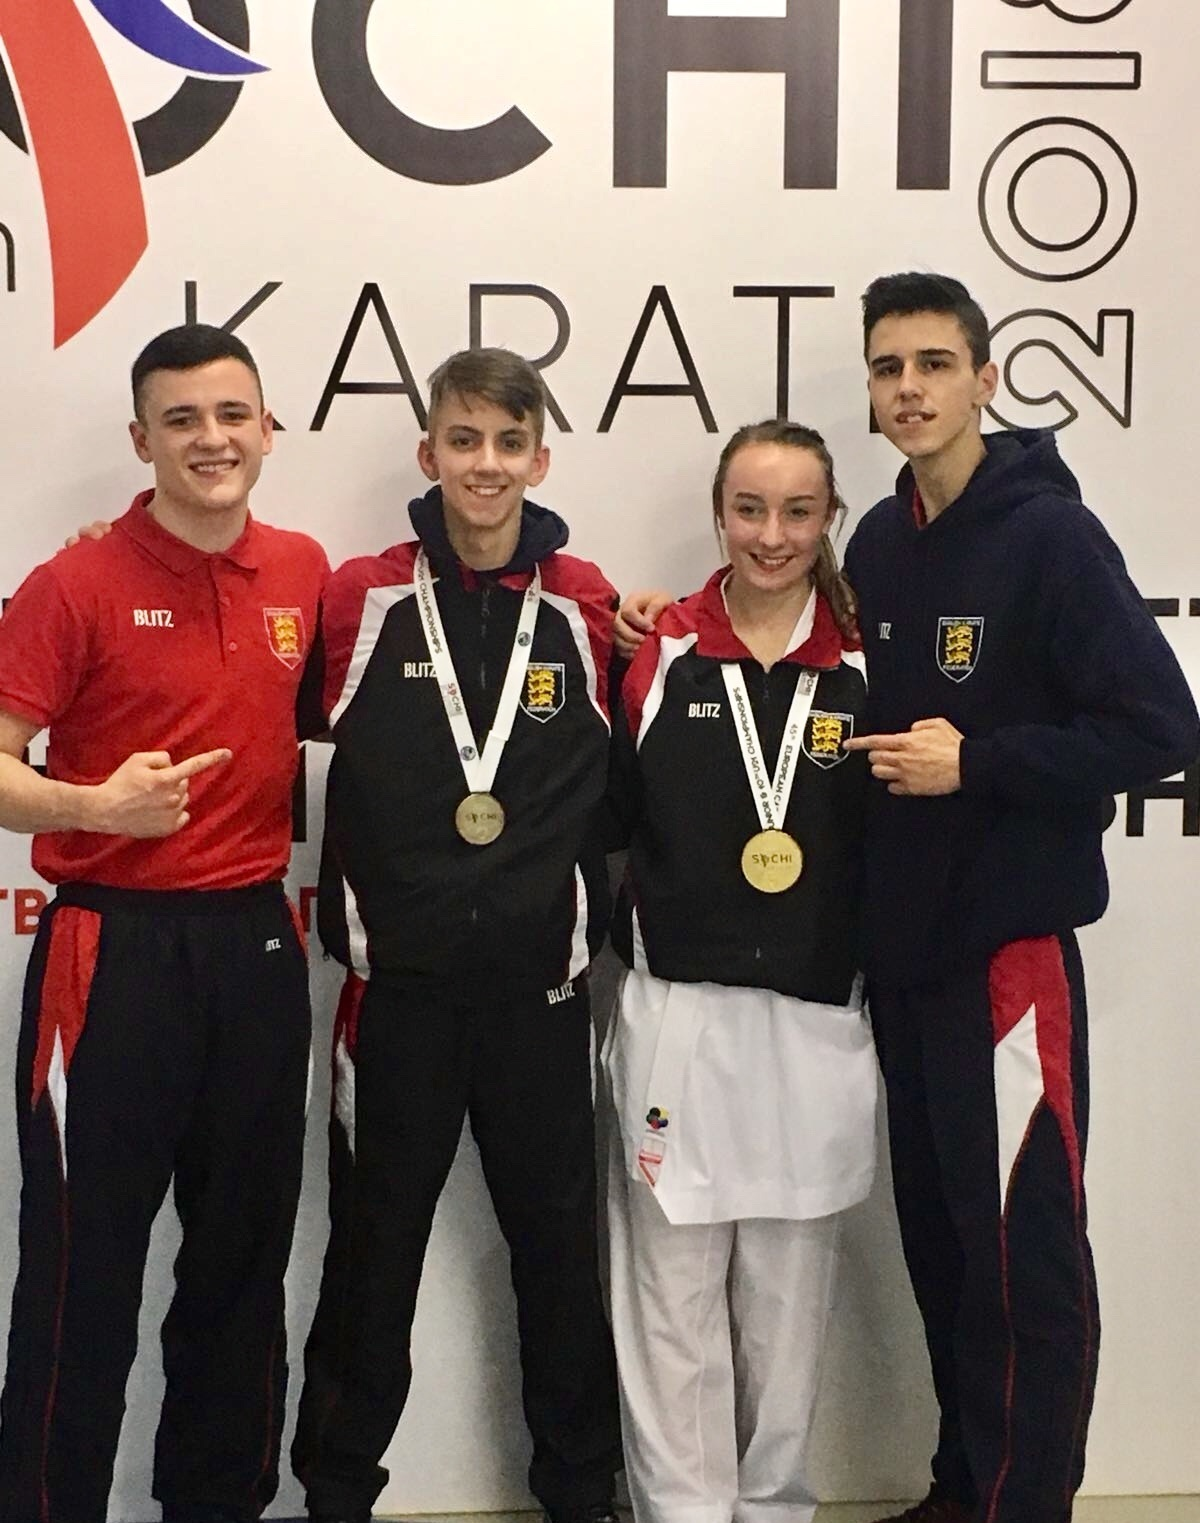 Euro success - Ethan Day and Charlotte Hope (in the middle) are flanked by Links team-mates Mitchell Thorpe (left) and Sam Day, who joined them at the European Karate Cadet, Junior and Under-21 Championships, in Russia